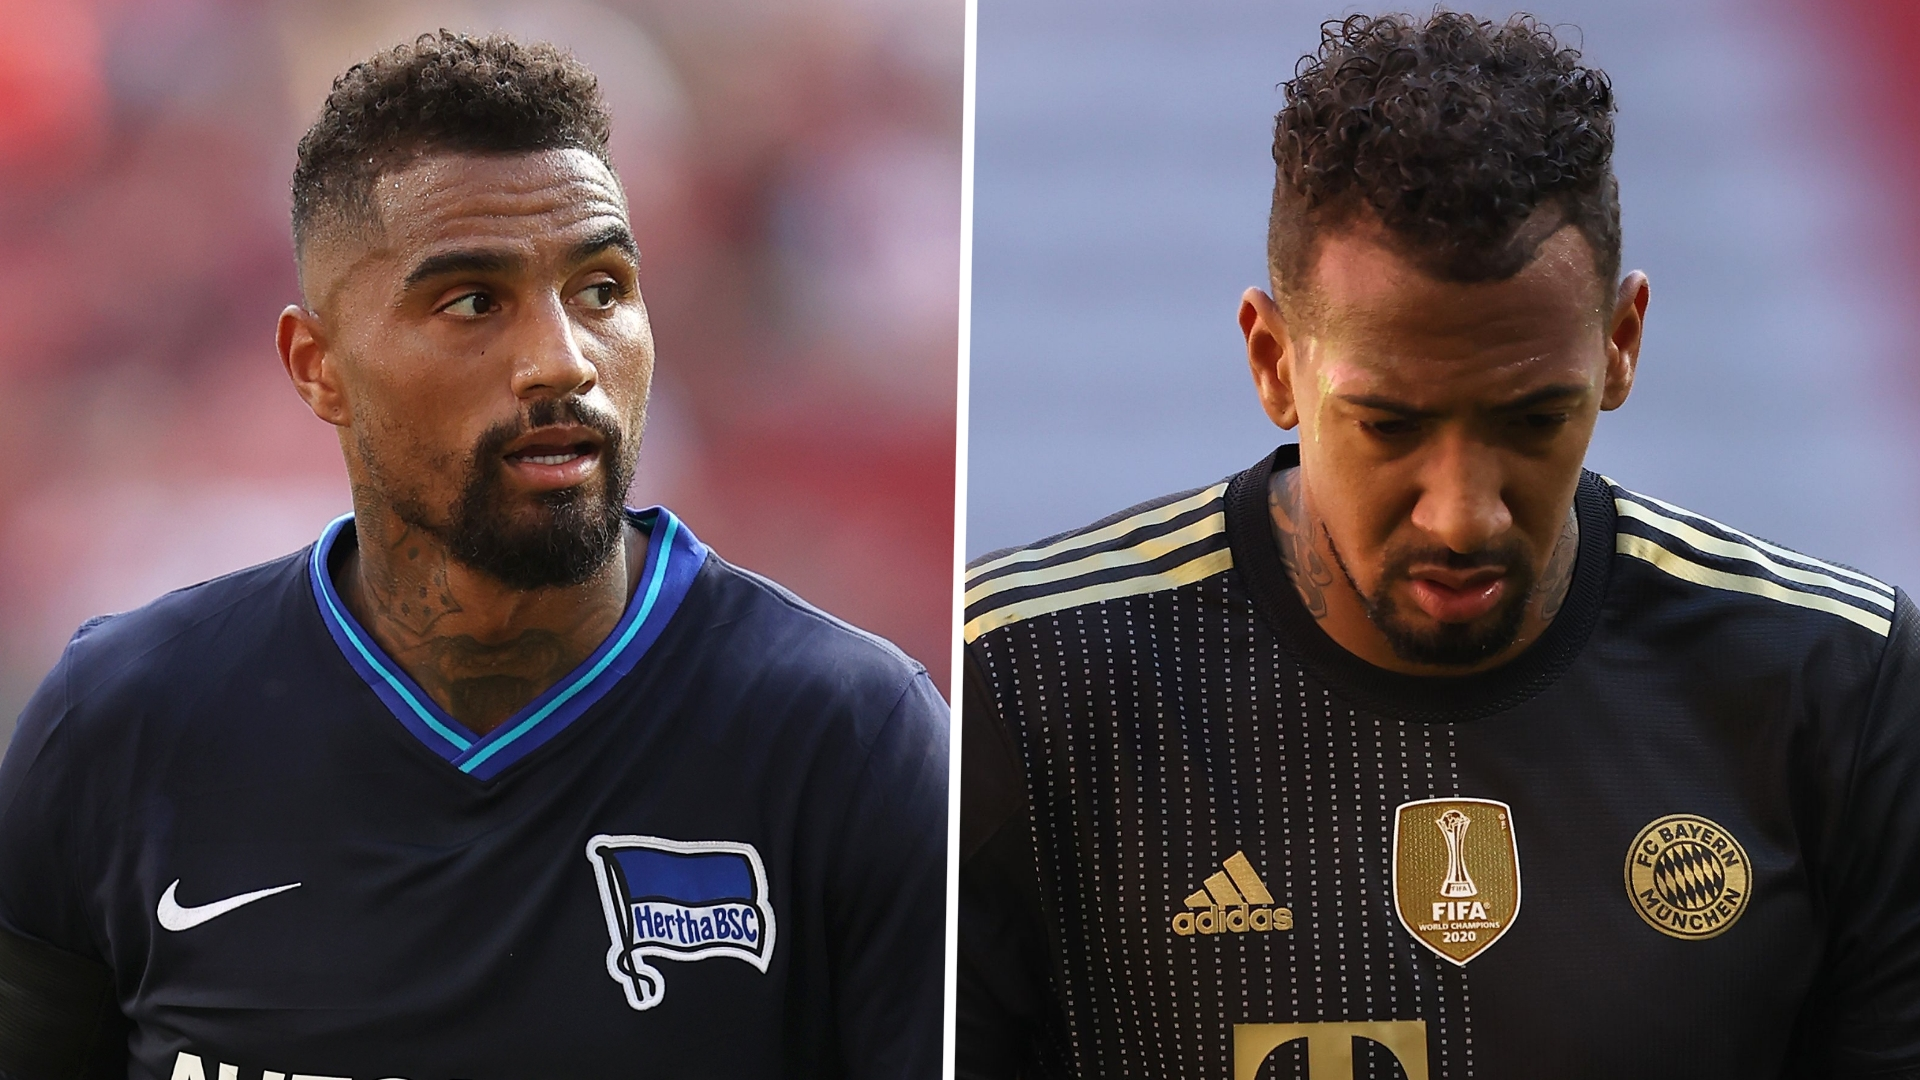 Kevin-Prince wants 'nothing to do' with half-brother Boateng after ex-Bayern Munich man found guilty of assault